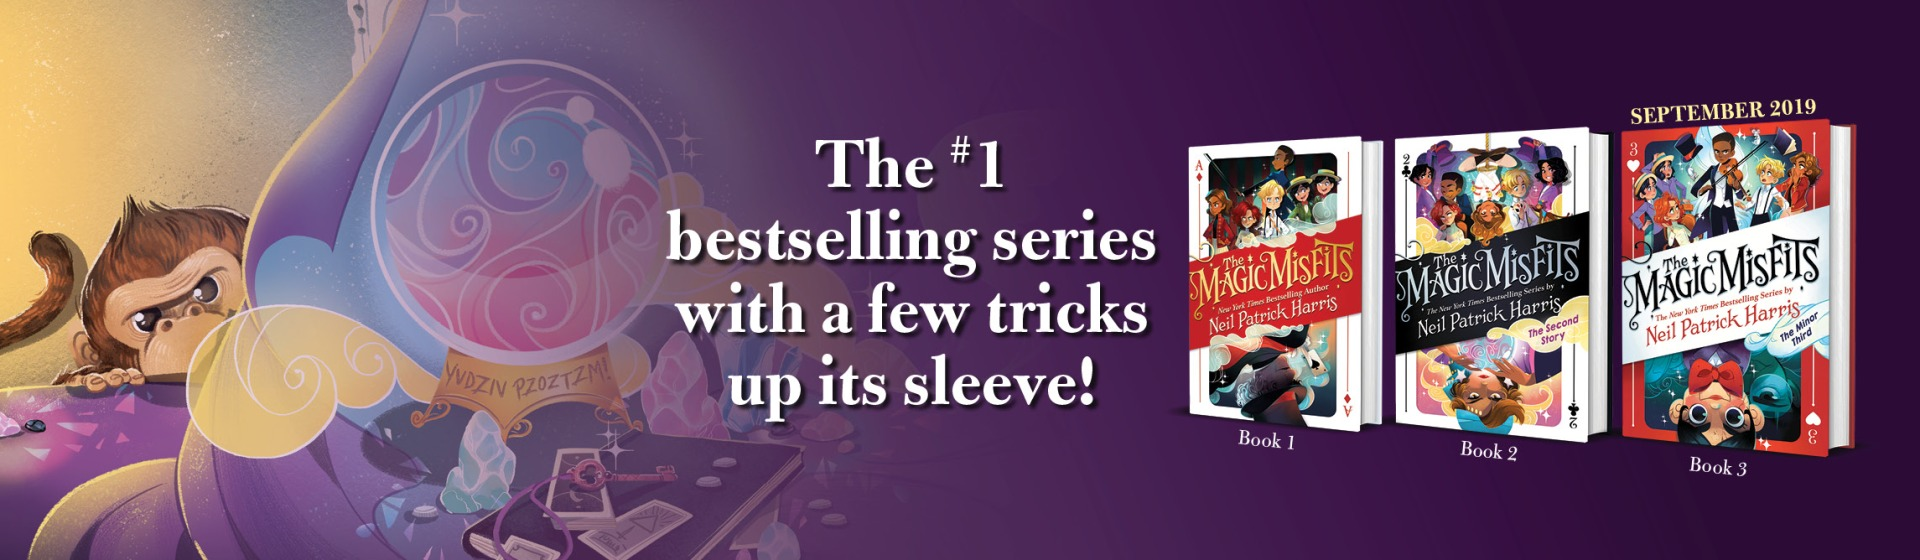 READ THE MAGIC MISFITS SERIES! | Little, Brown Books for